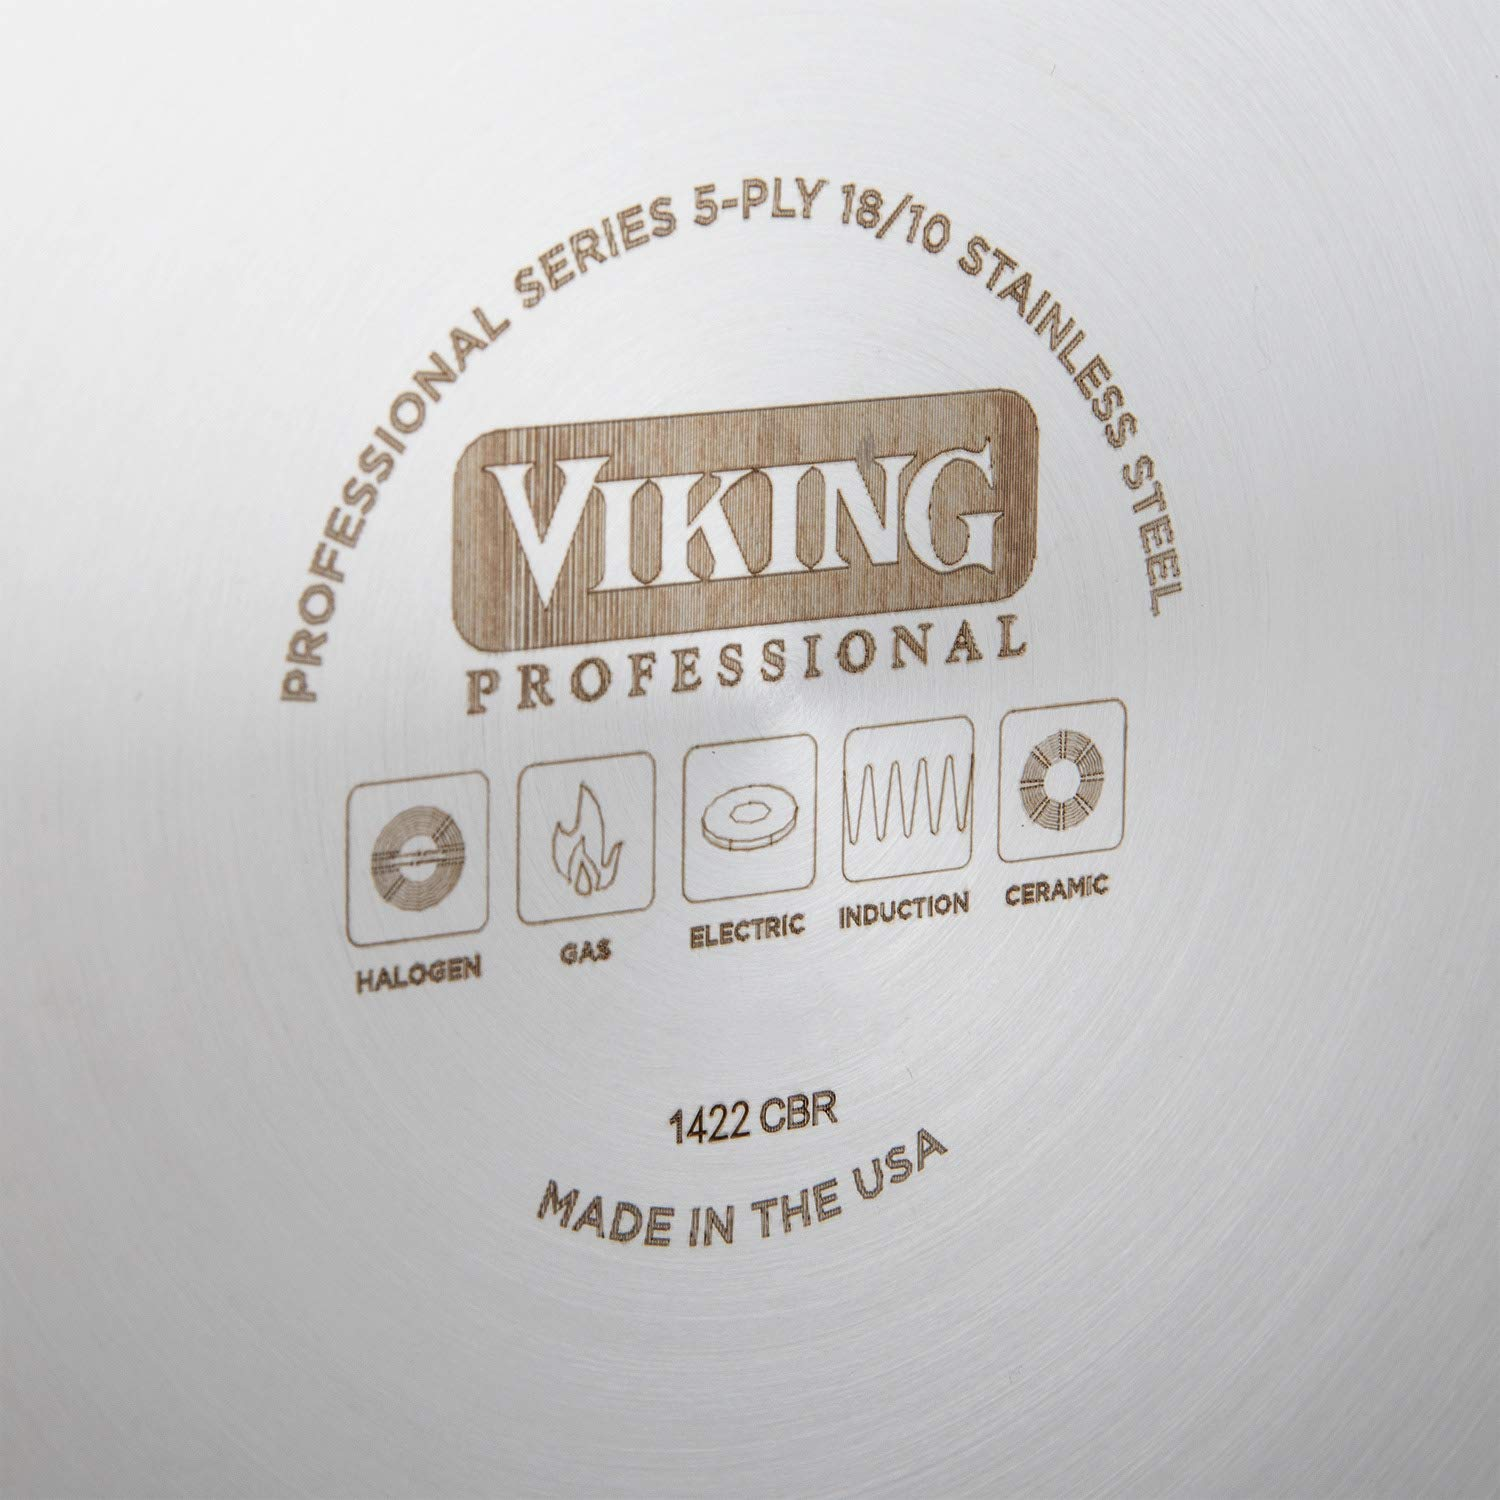 Viking Professional 5-Ply Stainless Steel Stockpot with Lid 8 Quart